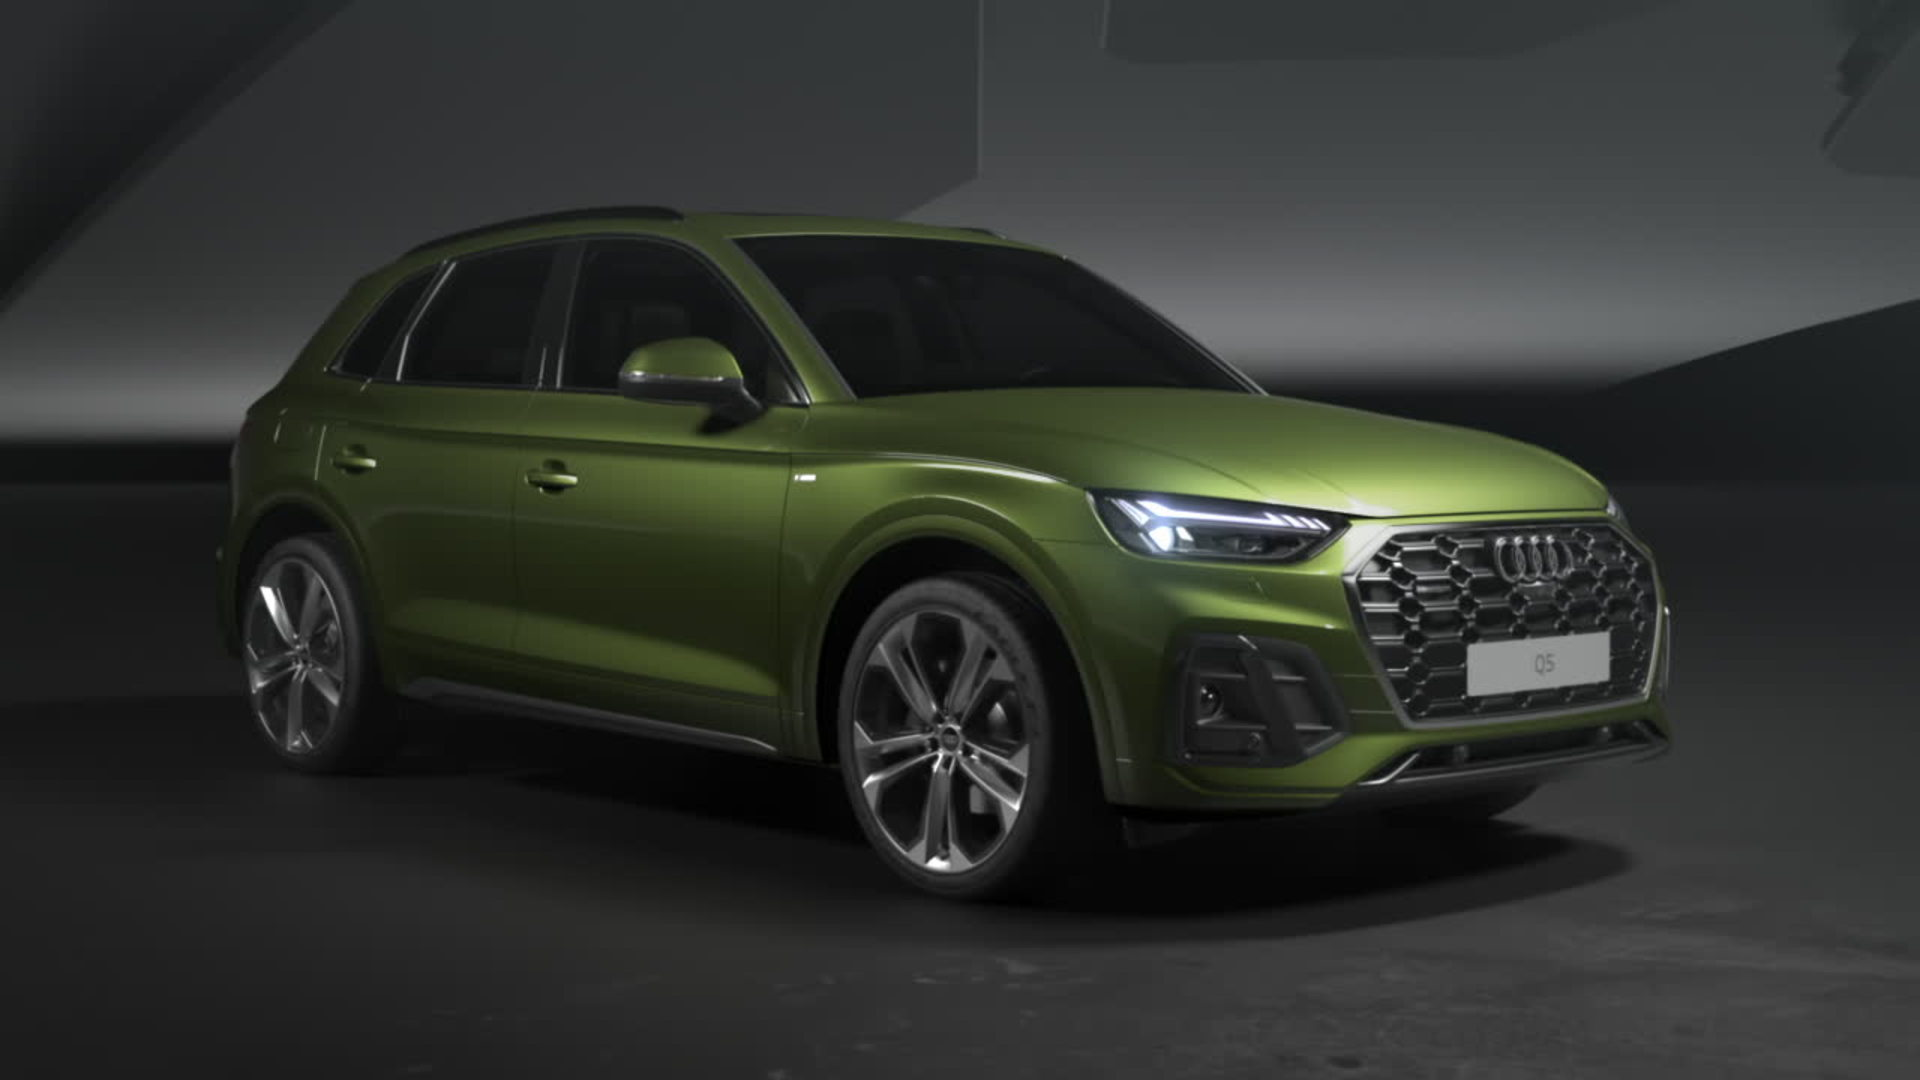 Animation: The design of the Audi Q5